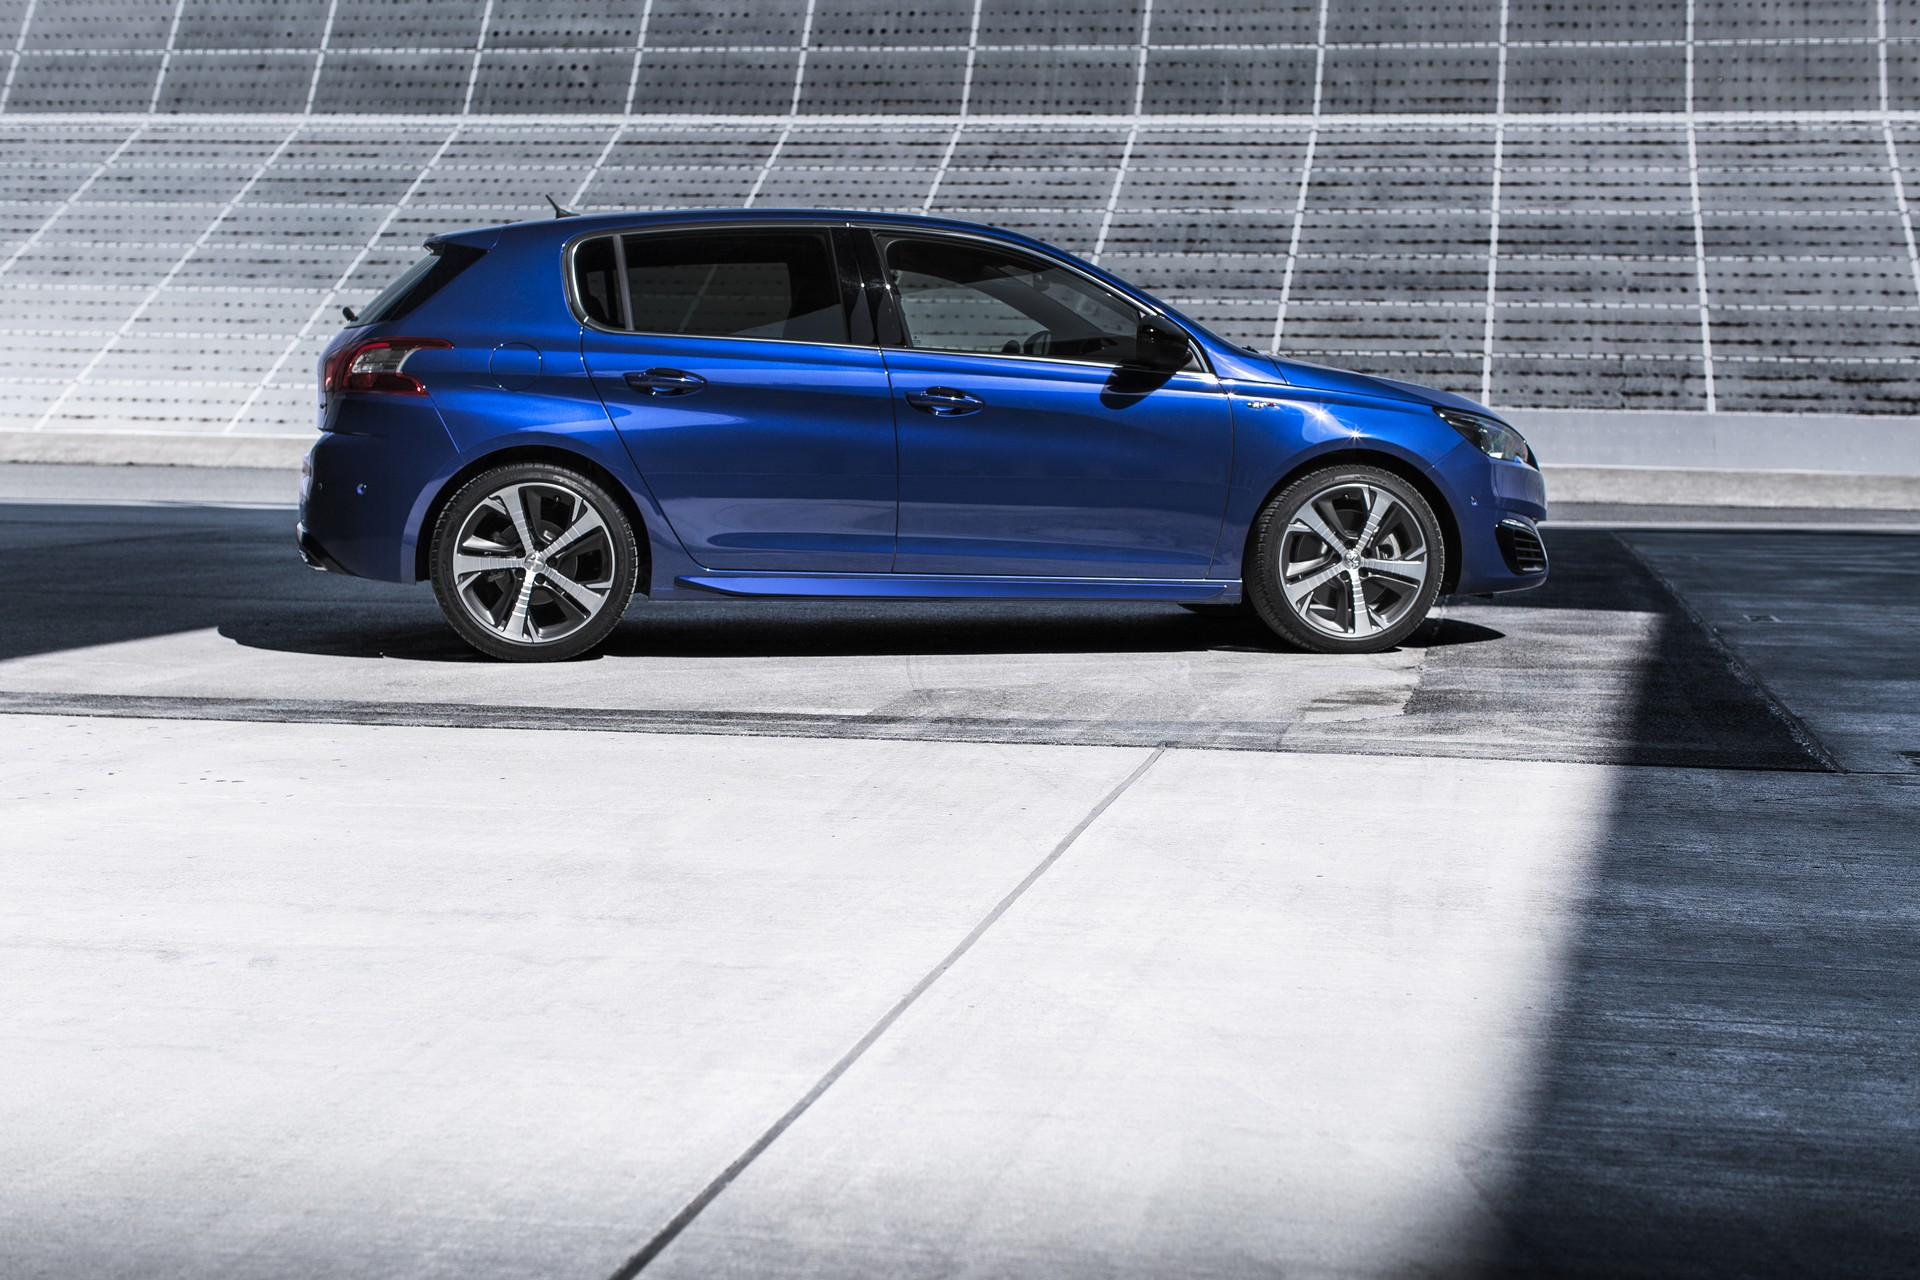 2015 Peugeot 308 GT 02 Images - Peugeot officially reveals 308 GT